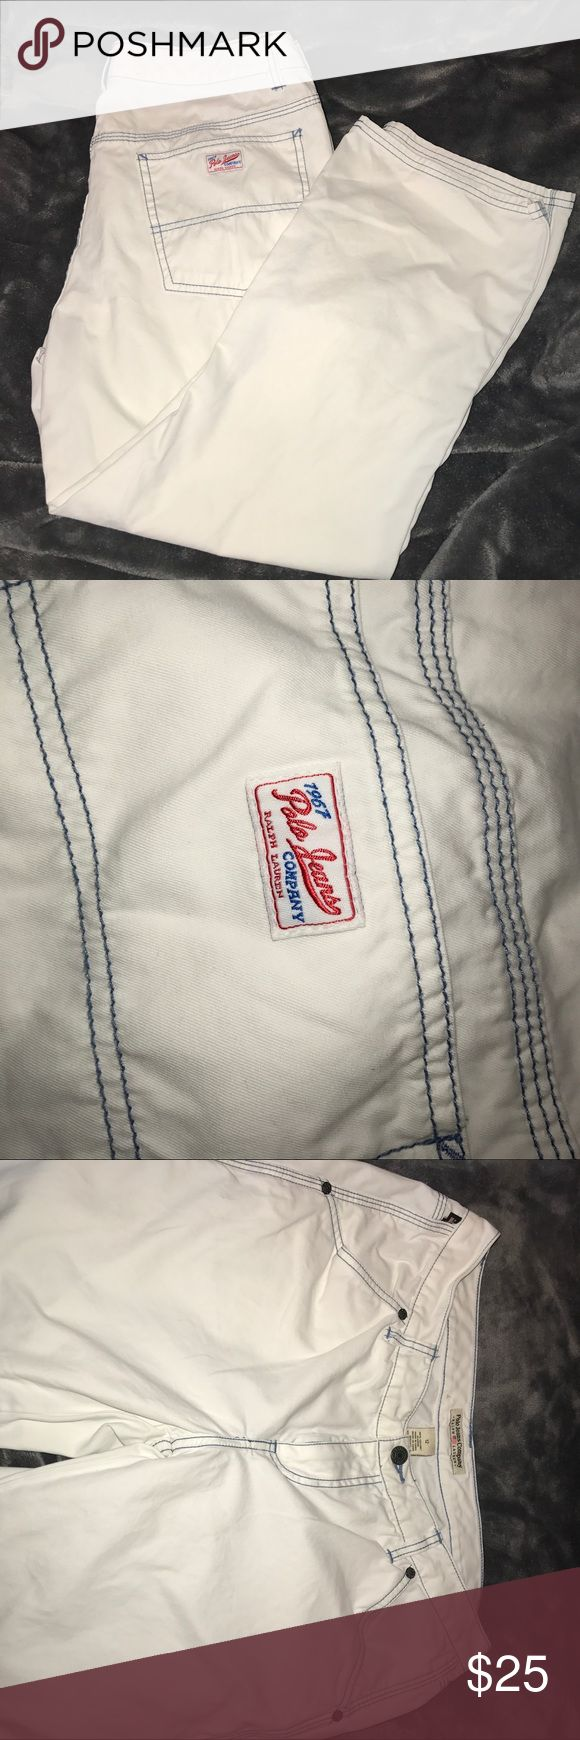 POLO JEANS CO. White Pants w/Blue Stitching! Cute! Never Worn! Never Washed! 100% Cotton! Made w/thick-as-denim material (but softer 😀). Inseam = 24 Inches; Length = 34 Inches. Two pockets in the back; two pockets in the front; and two extra pockets on right-side leg (see photos)! These look to be ankle pants! Super Cute!!⭐️ Polo Jeans Company Pants Ankle & Cropped